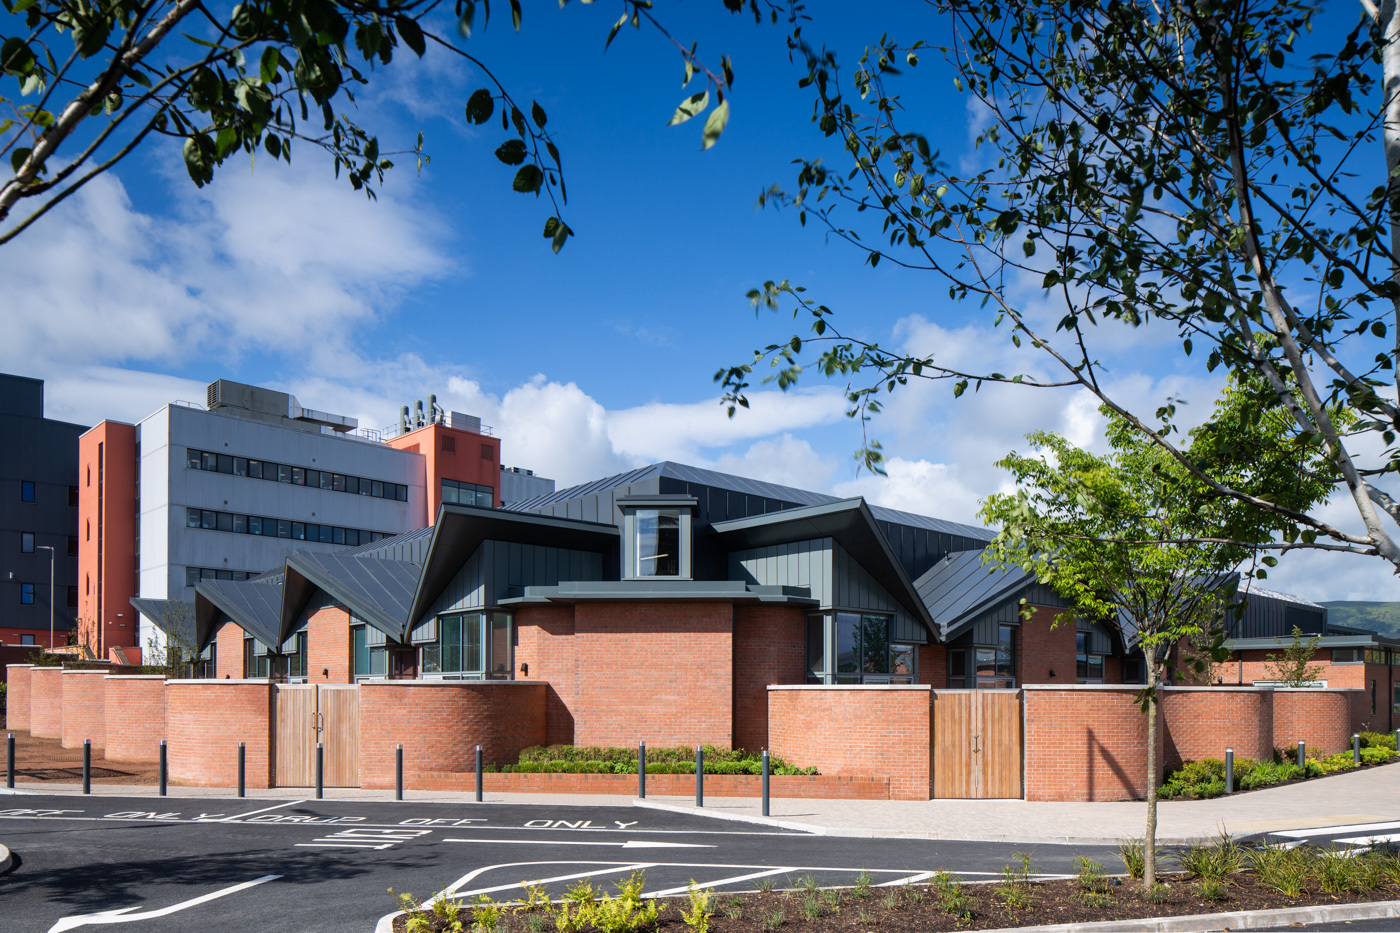 Works complete on £33m Acute Mental Health Inpatient Centre image